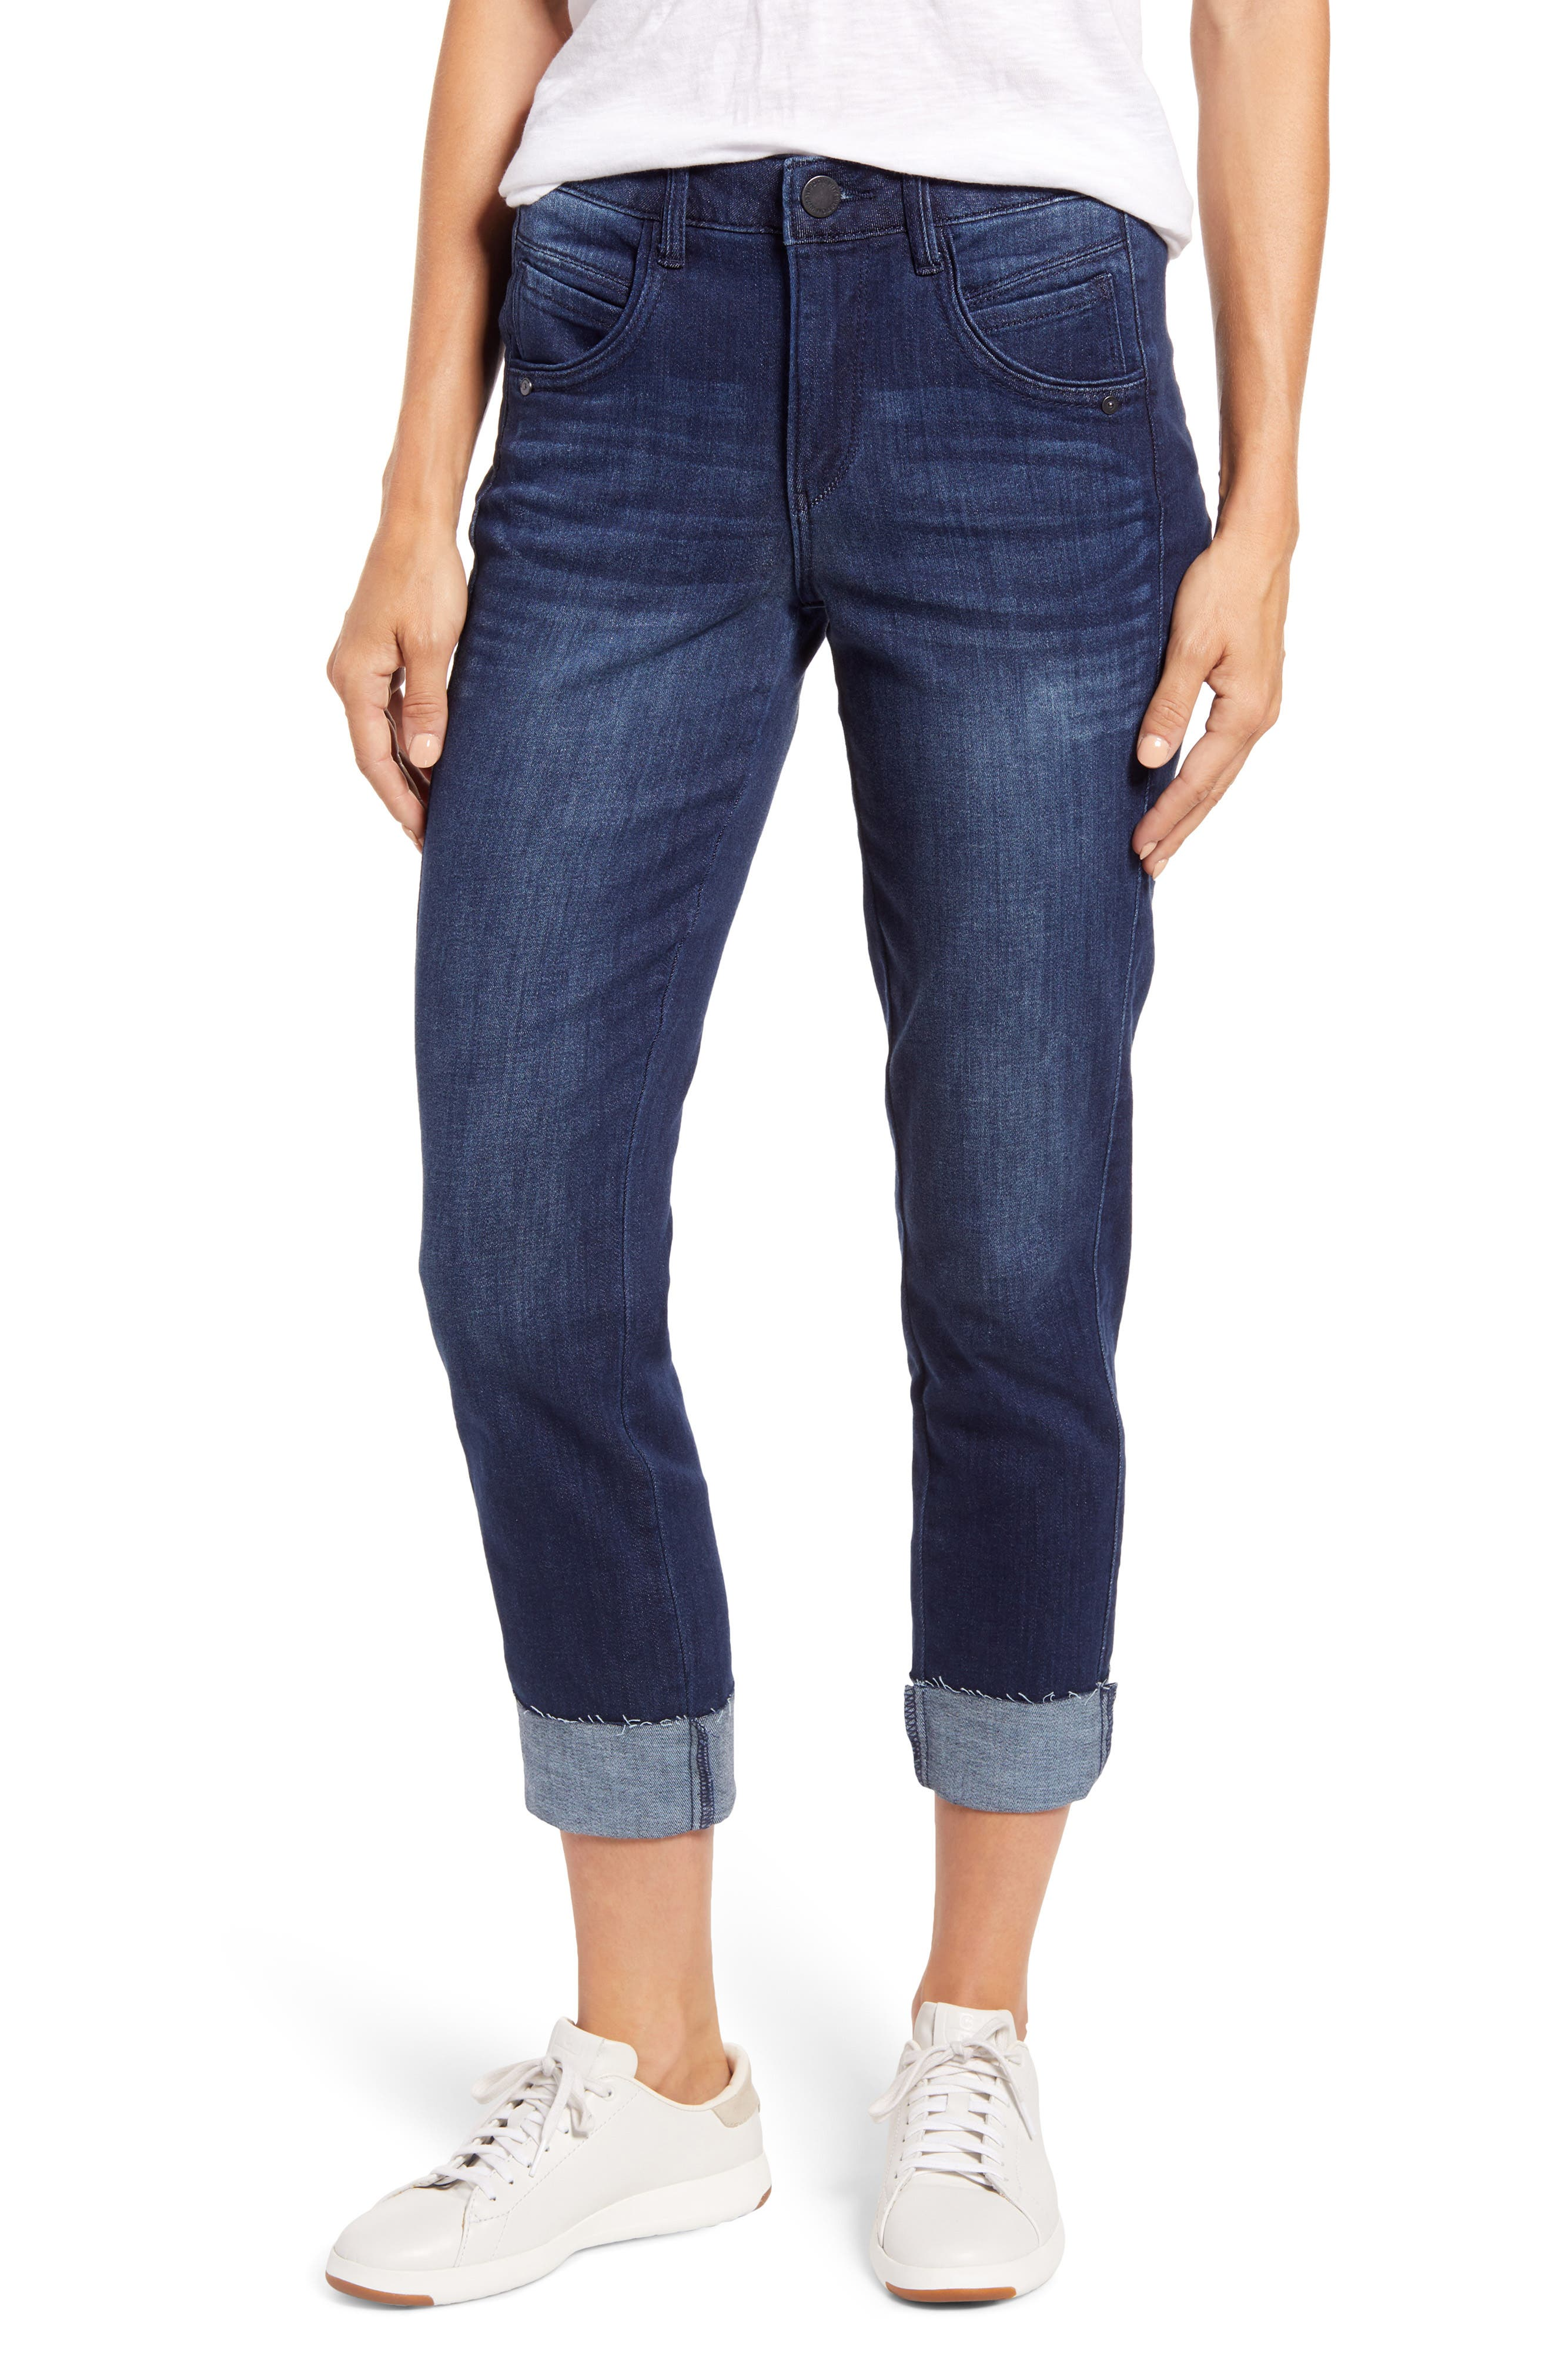 A slim straight leg offers a slouchy but not sloppy fit to these raw-hemmed jeans washed to a whiskered, dark blue rinse. The Ab-solution design slims with powermesh panels to mold and hold, and a waistband with interior-control and booty-lift construction. Style Name: Wit & Wisdom Ab-Solution High Waist Slim Straight Leg Jeans (Nordstrom Exclusive). Style Number: 6103826. Available in stores.